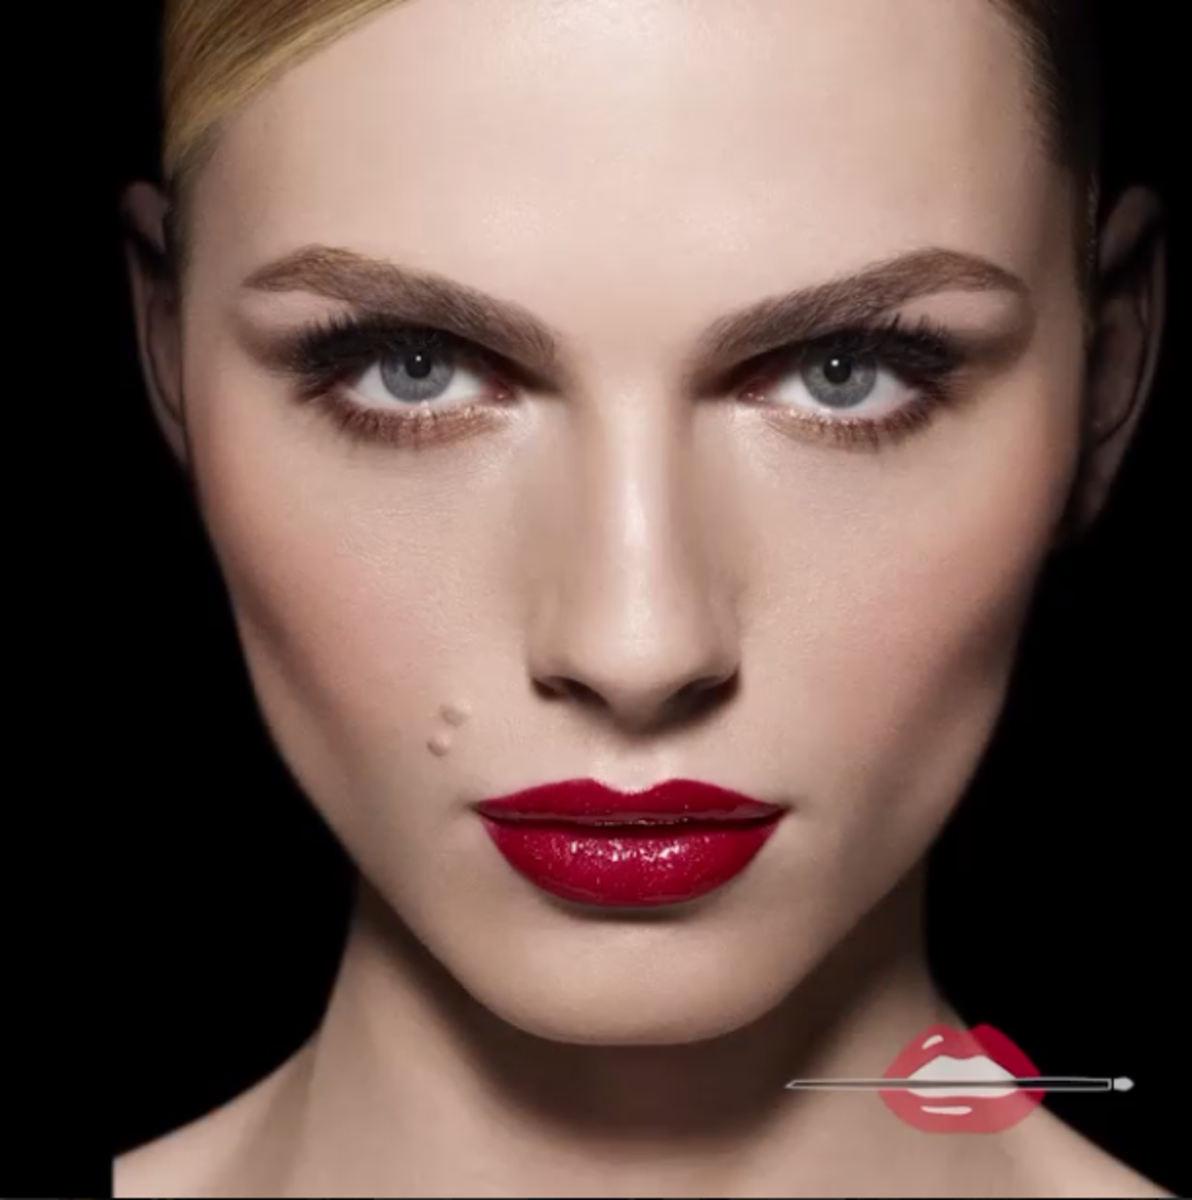 A look from Pejic's Make Up For Ever campaign. Photo: @andrejapejic Instagram